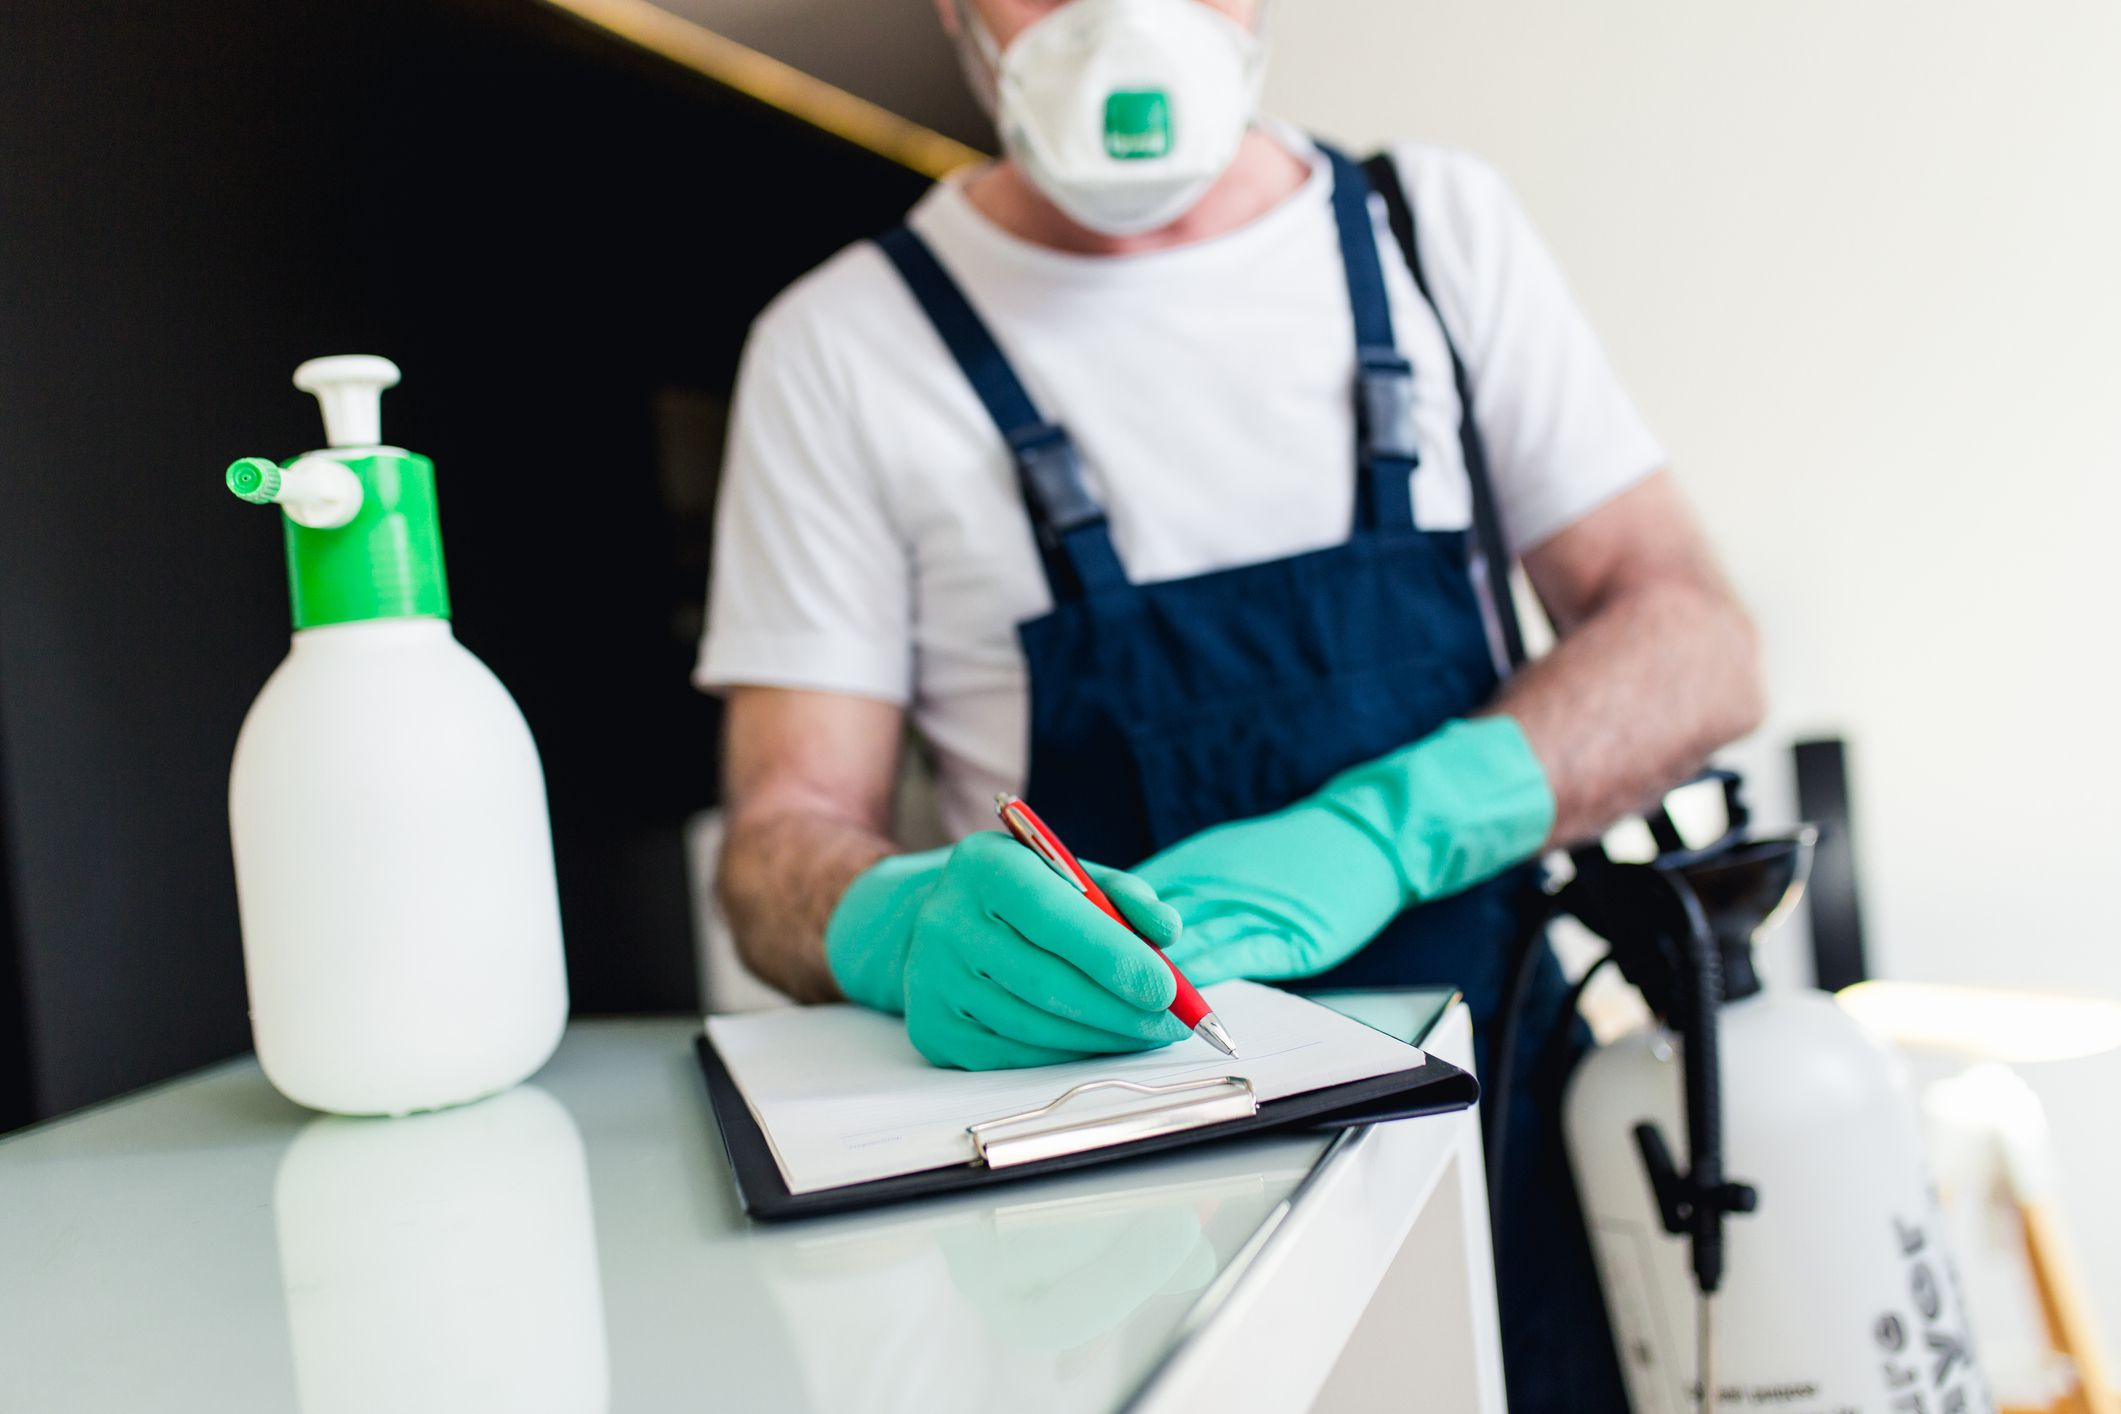 Reasons To Hire a Professional For Bug Control